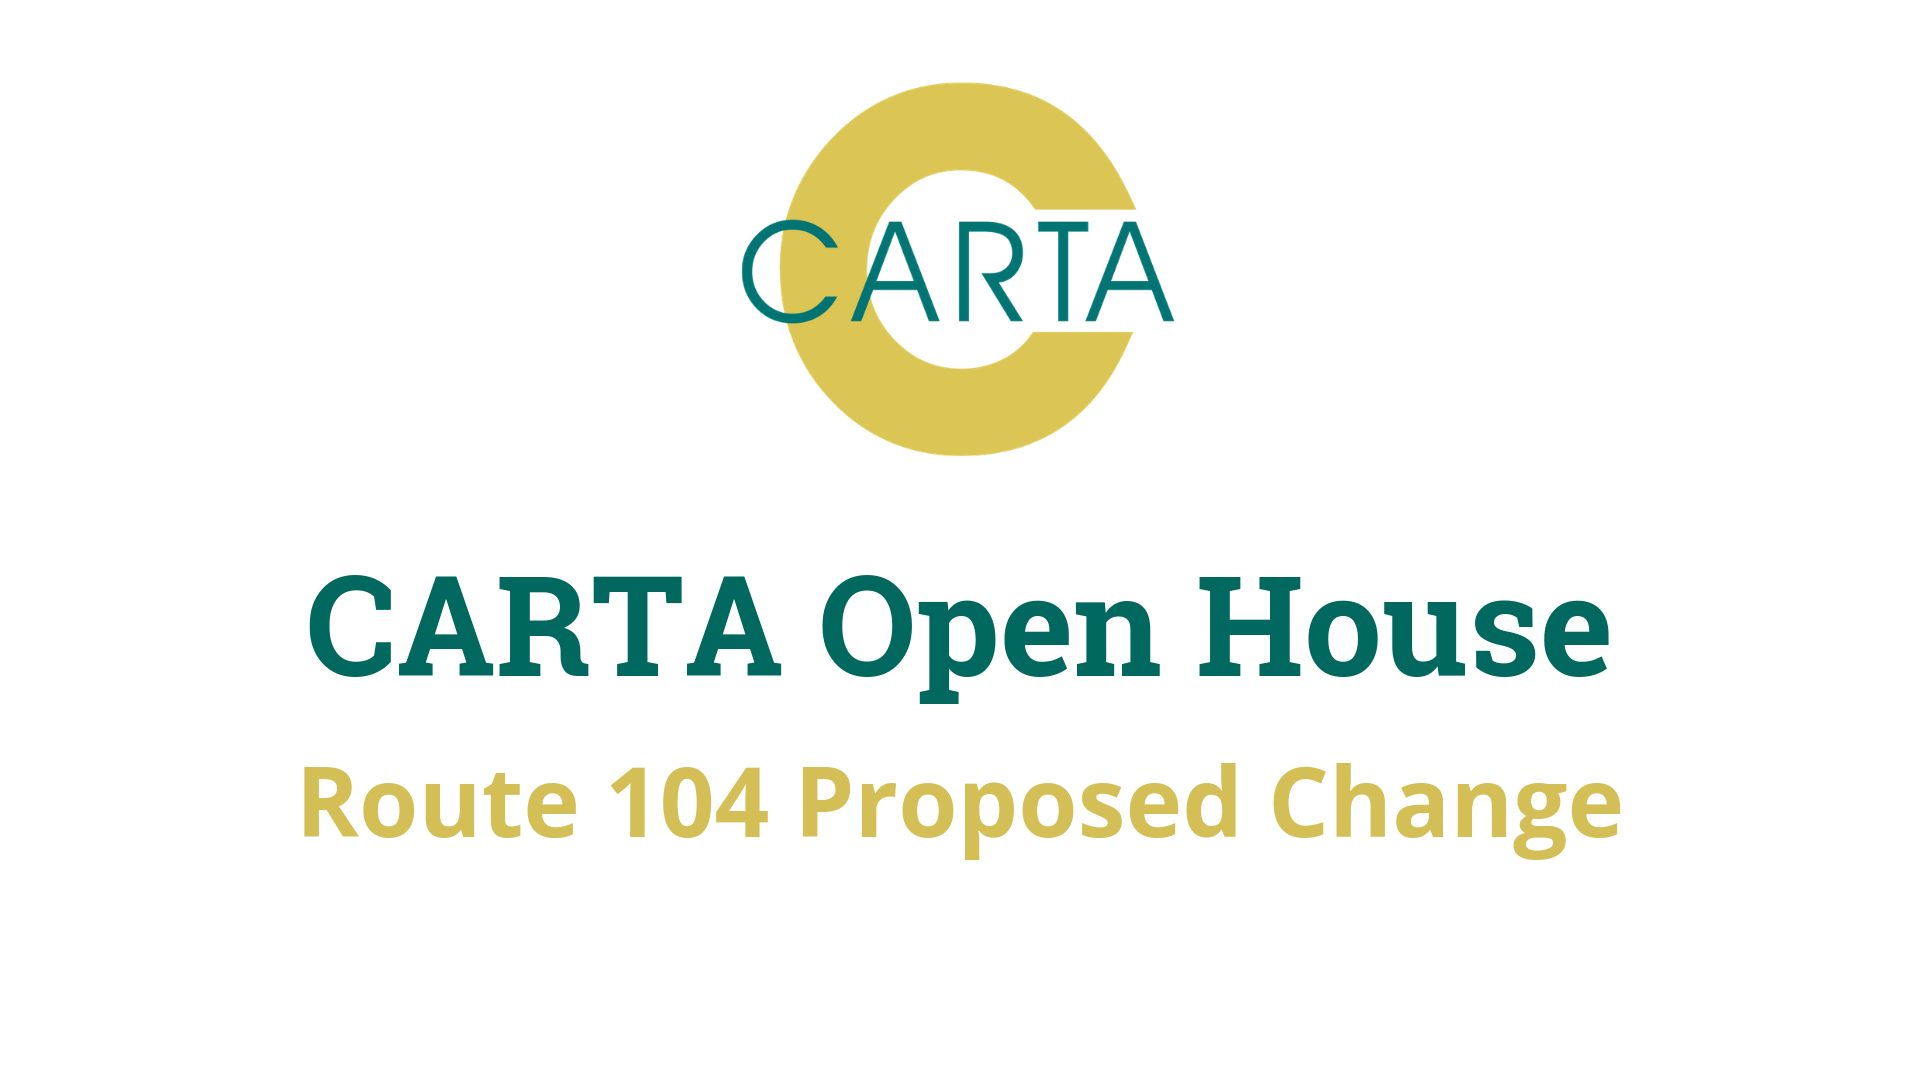 CARTA Open House – Route 104 Proposed Change